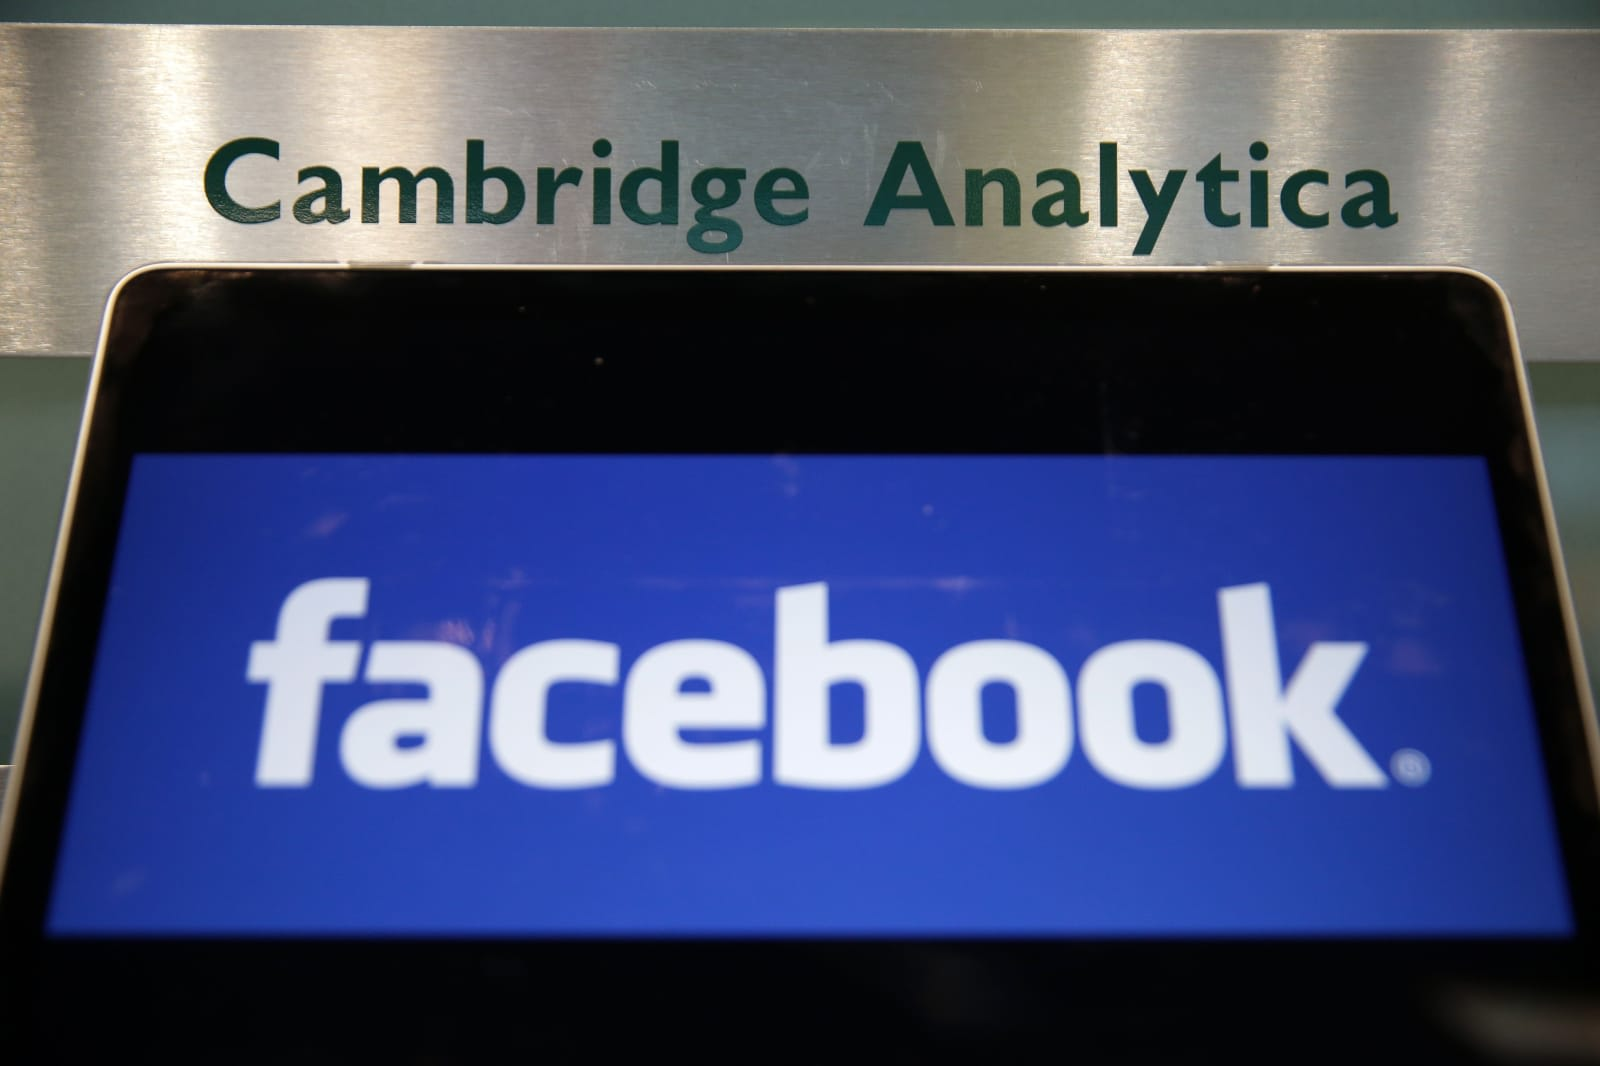 Cambridge Analytica tries to shoot down Facebook data sharing claims